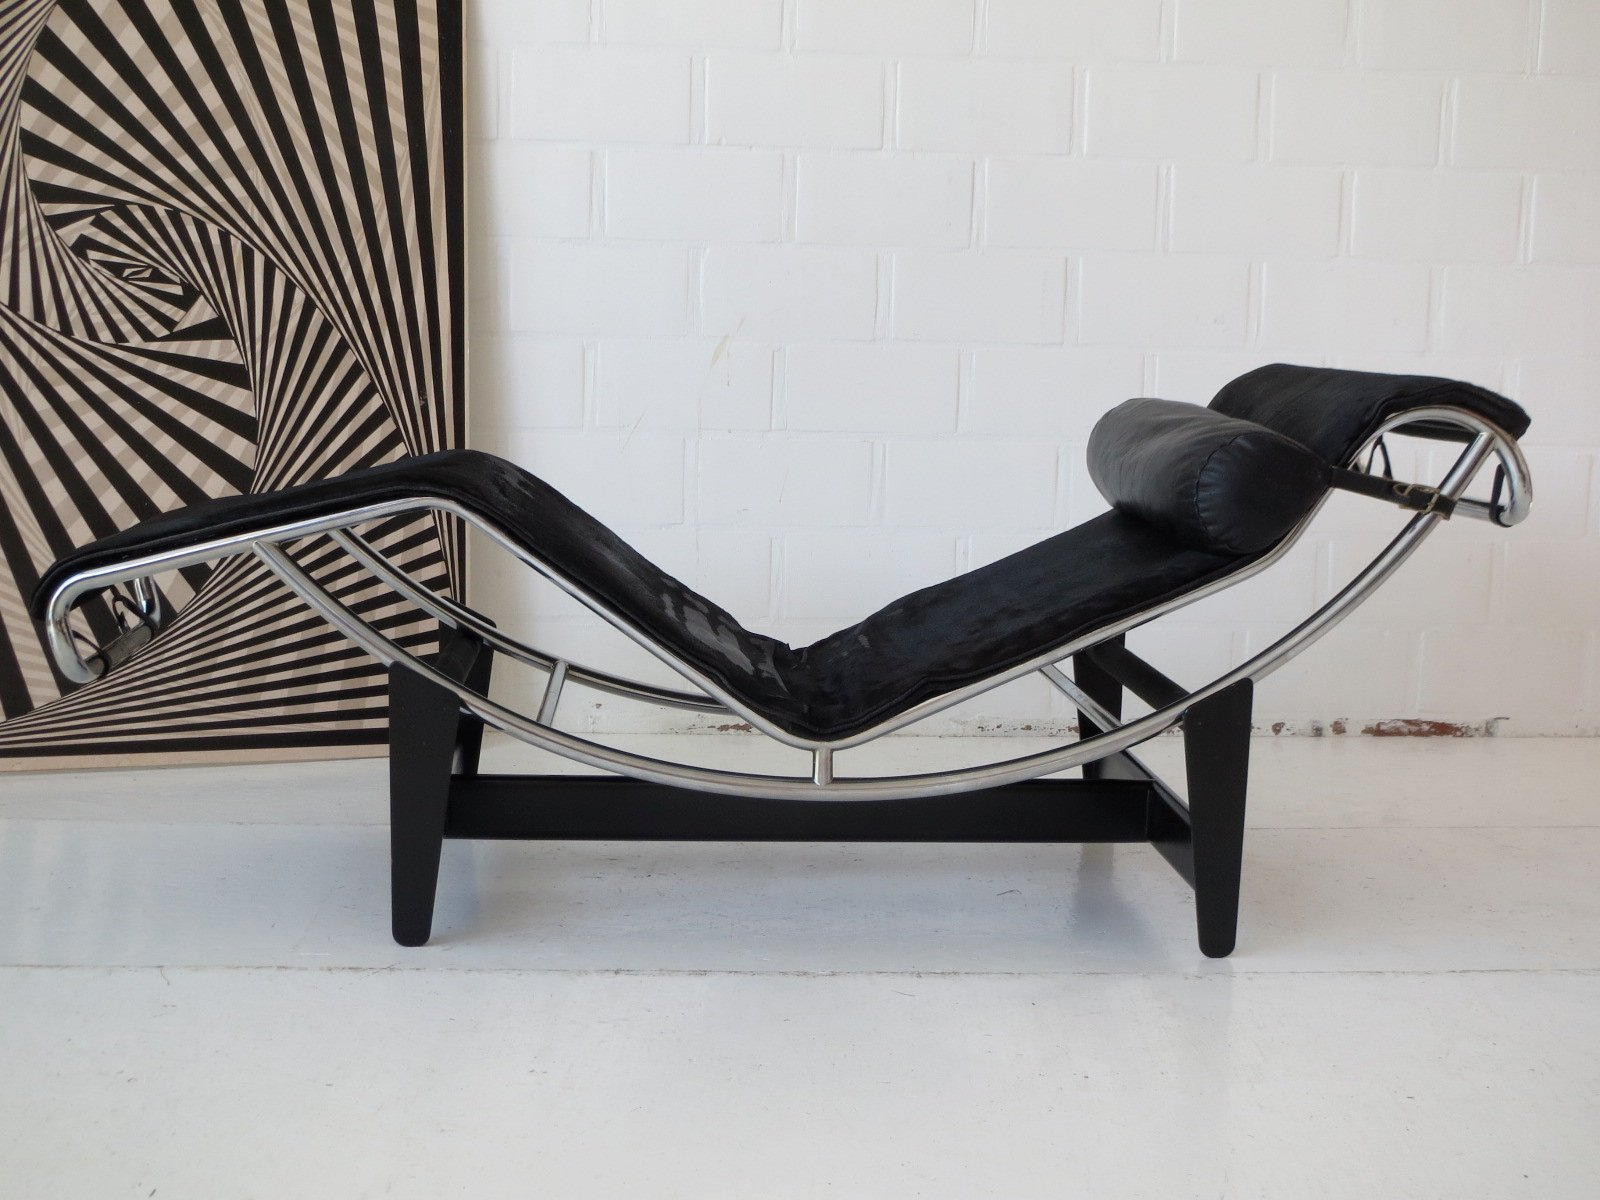 Early lc4 chaise longue by le corbusier charlotte for Chaise longue le corbusier cad